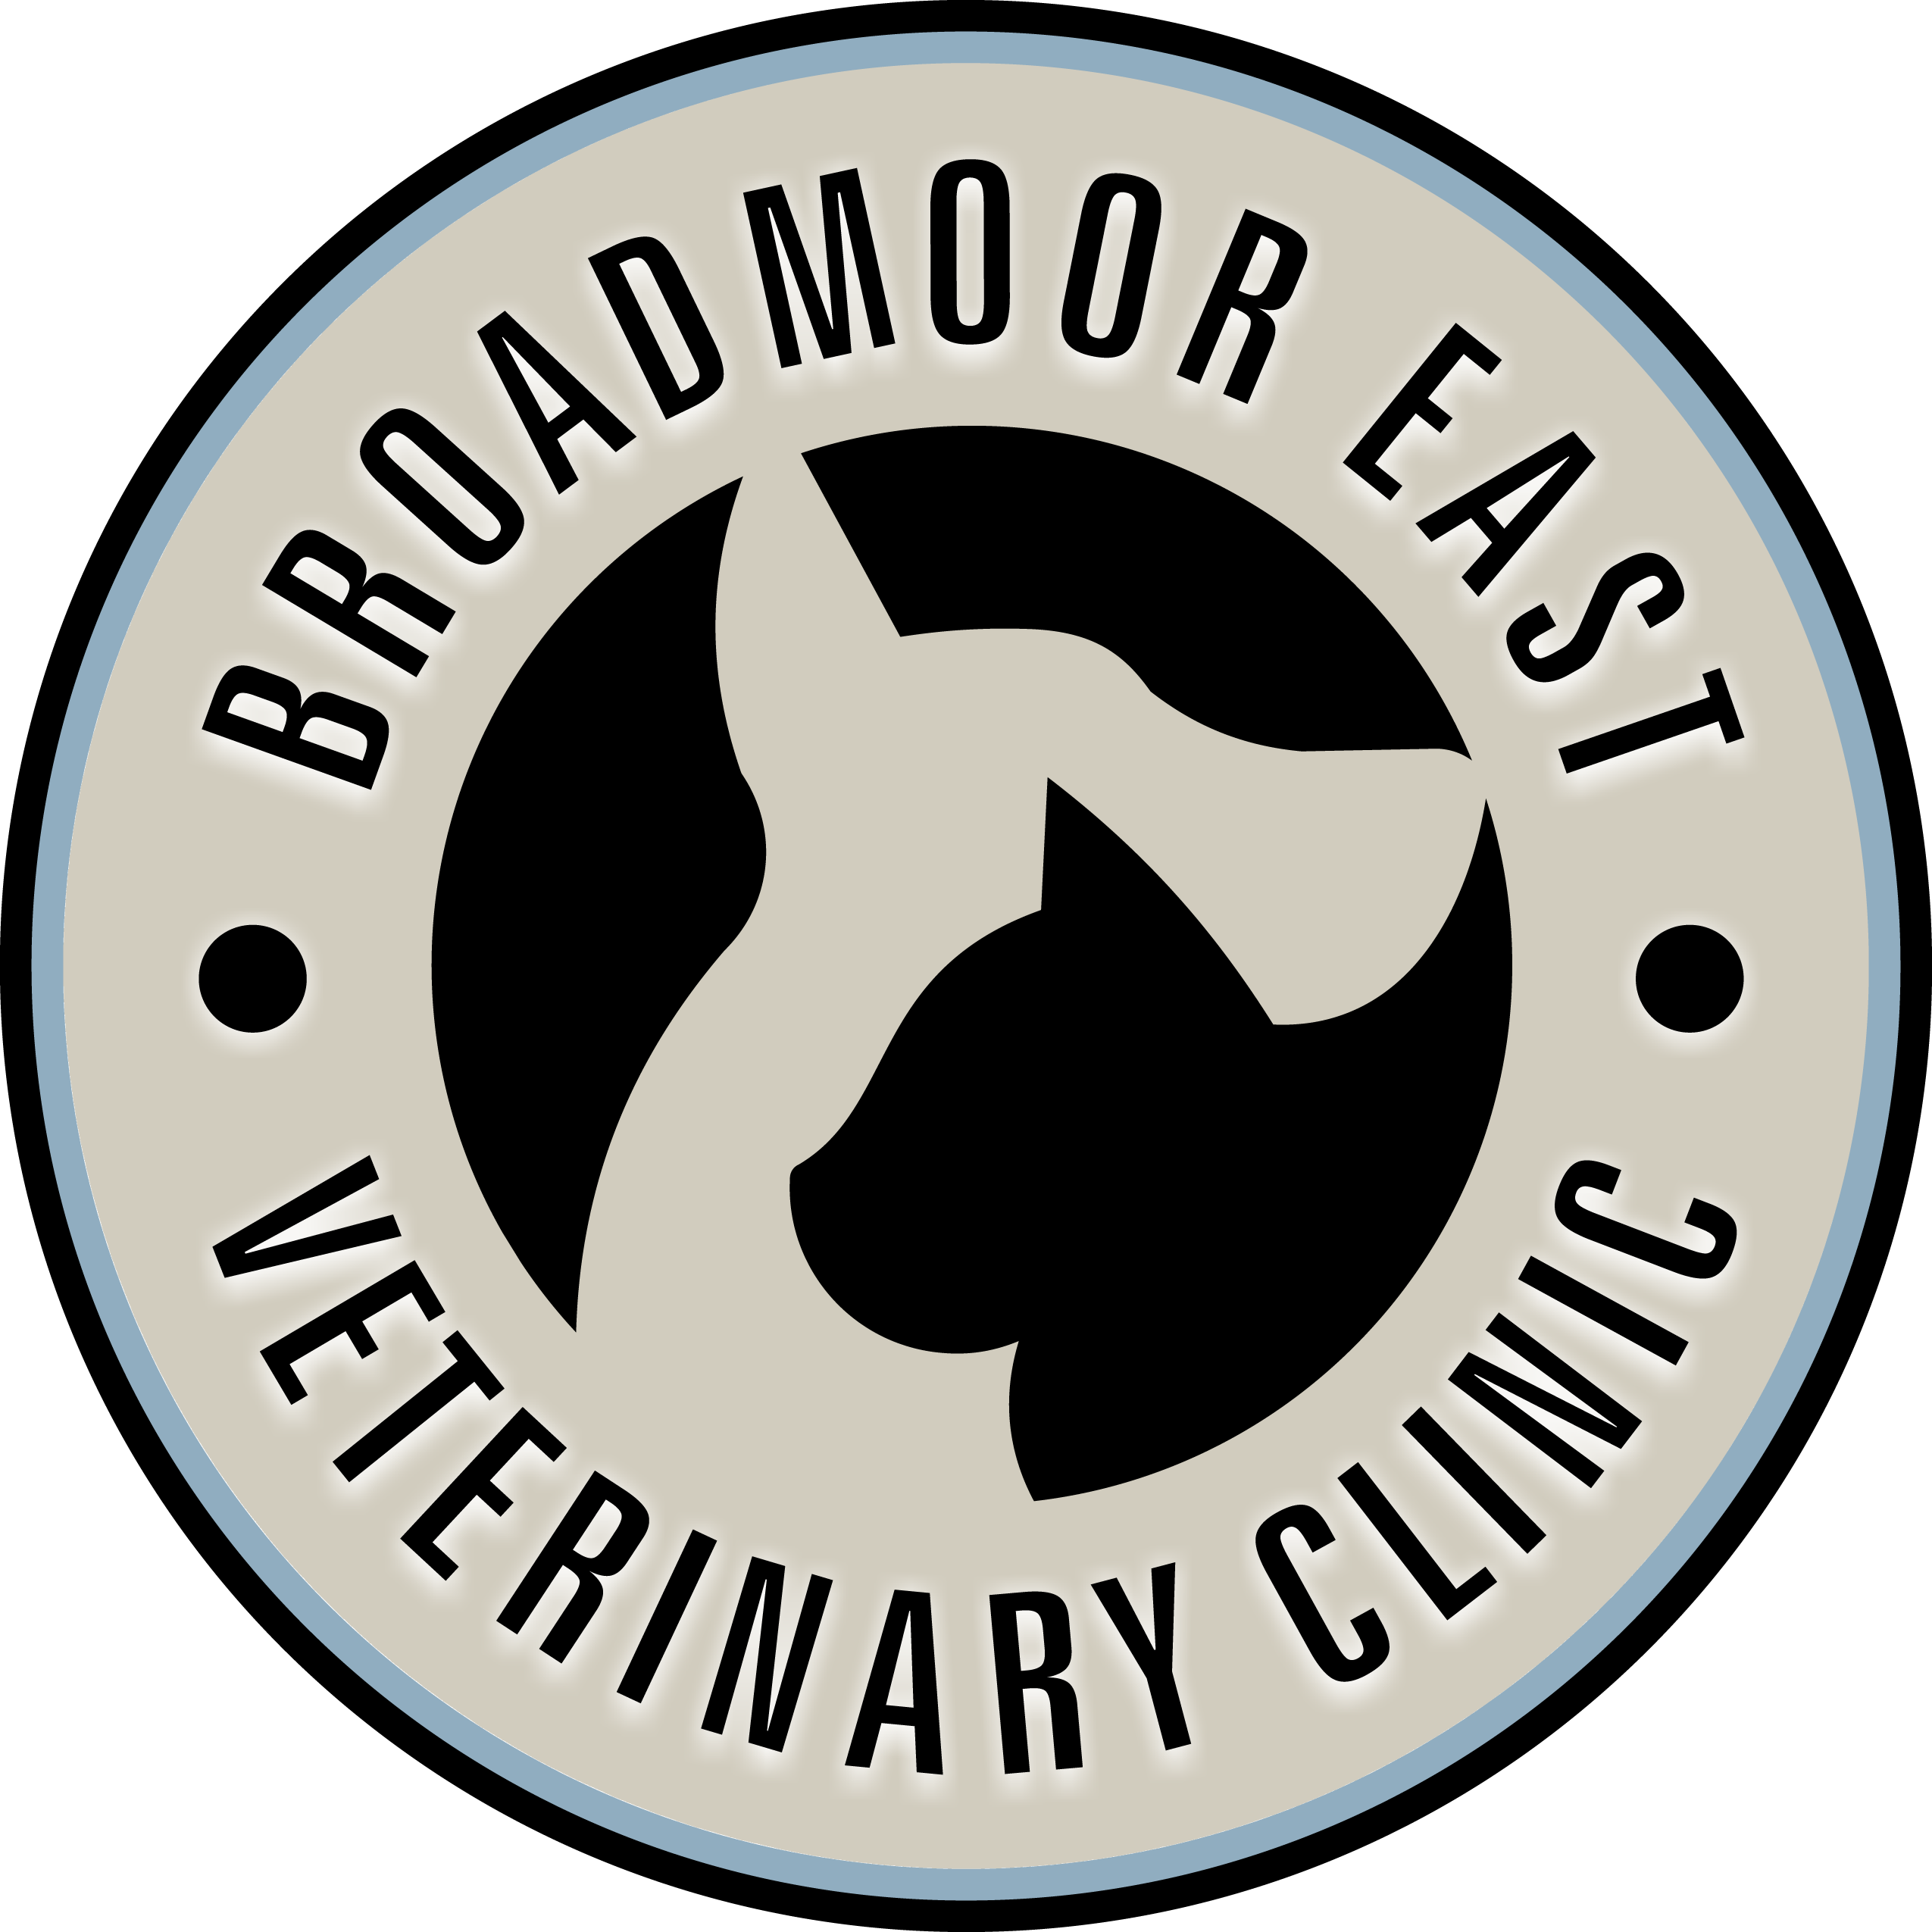 Broadmoor East Veterinary Clinic Icon